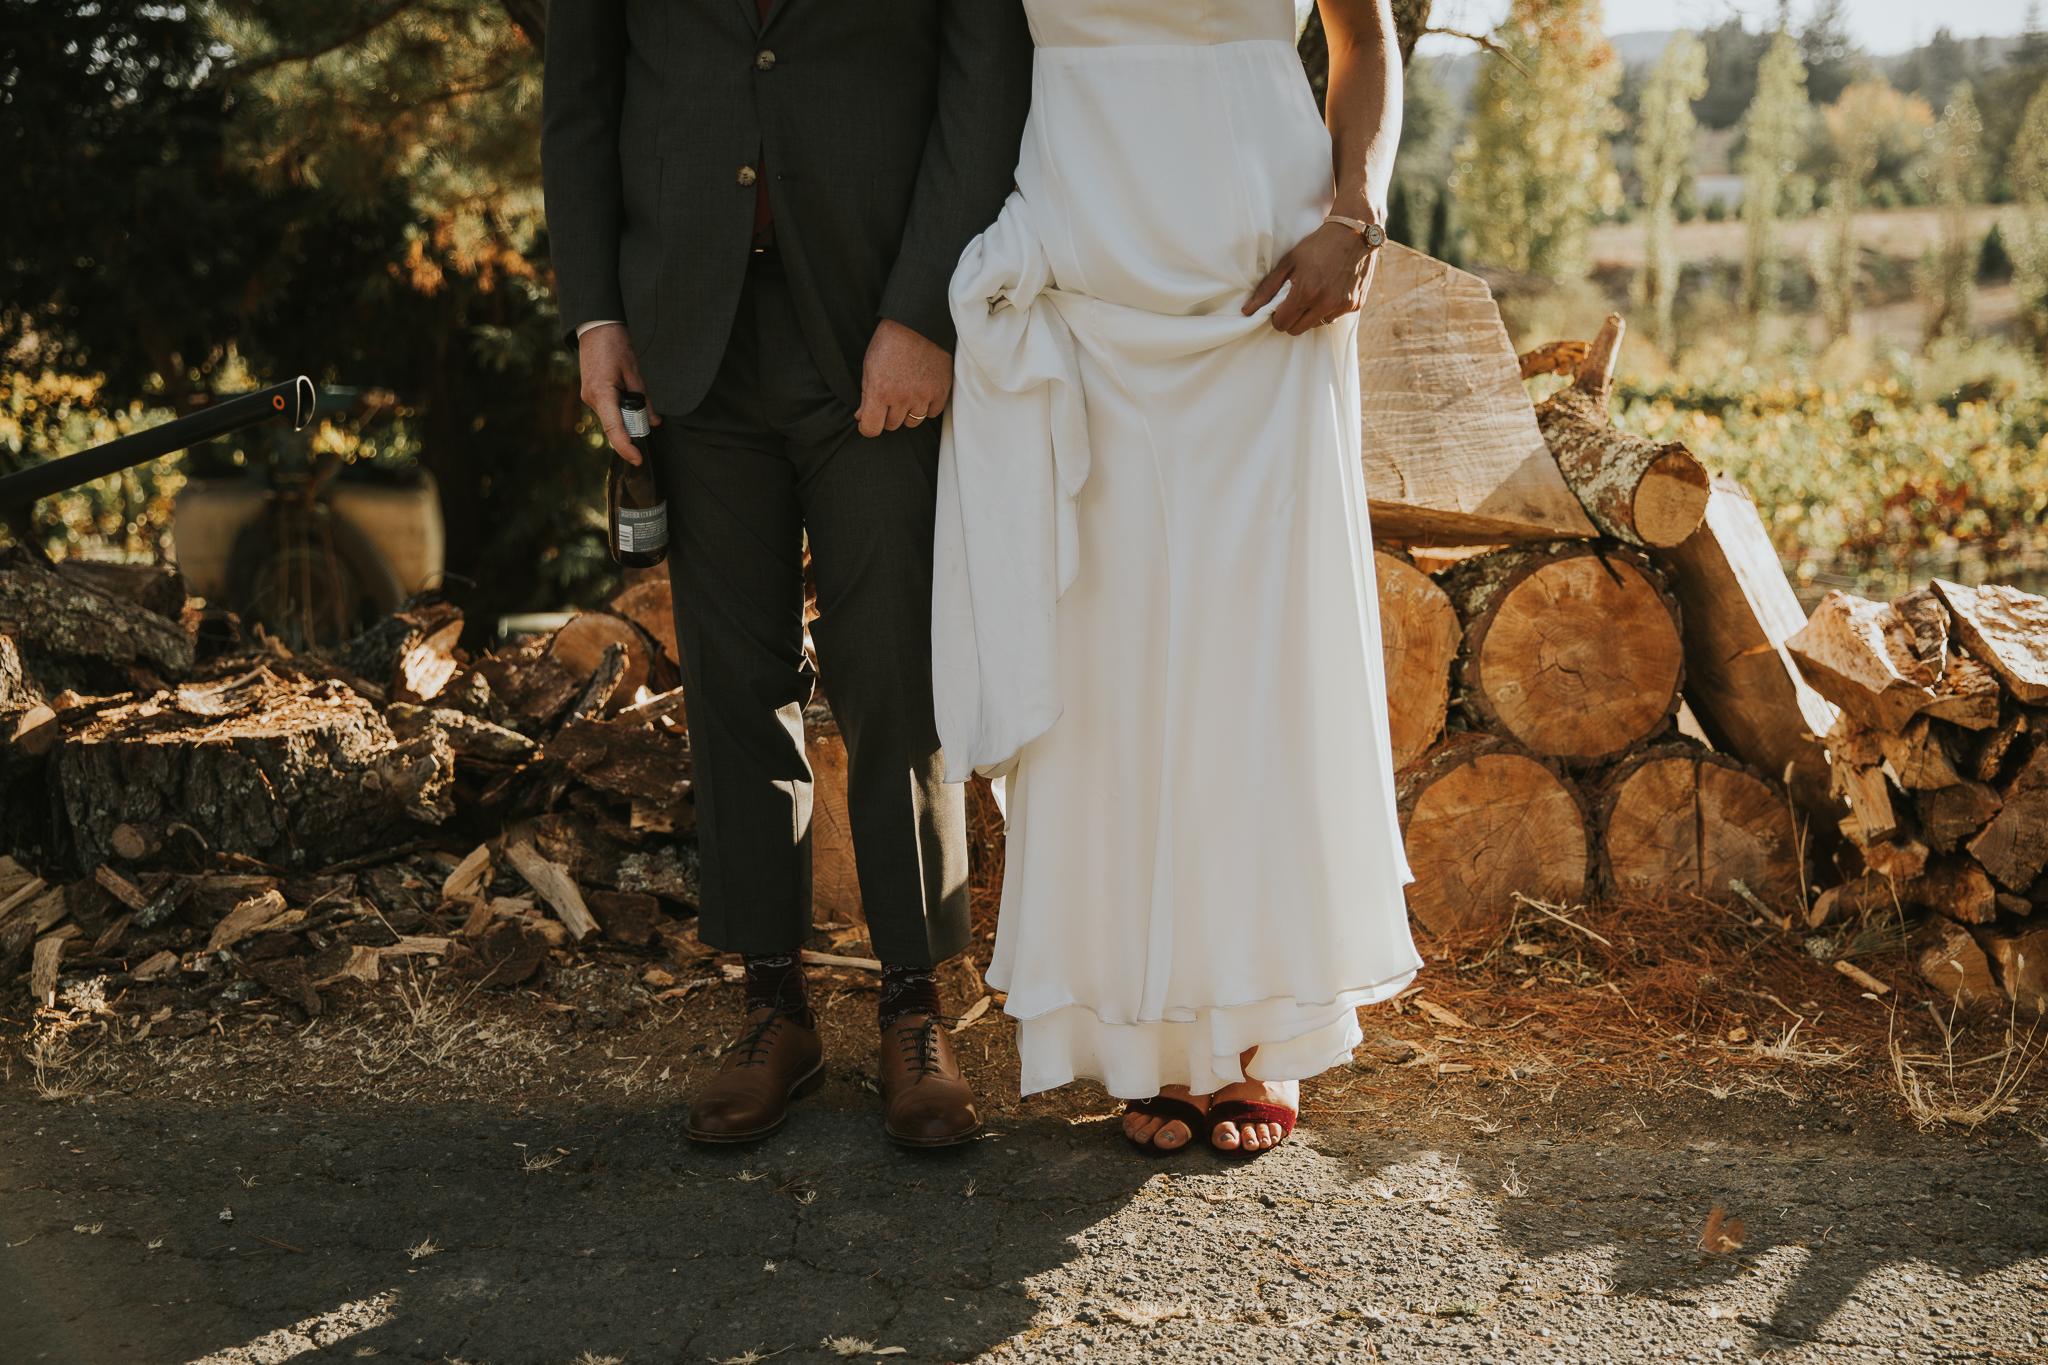 Hipster bride & Groom by Dia Photography